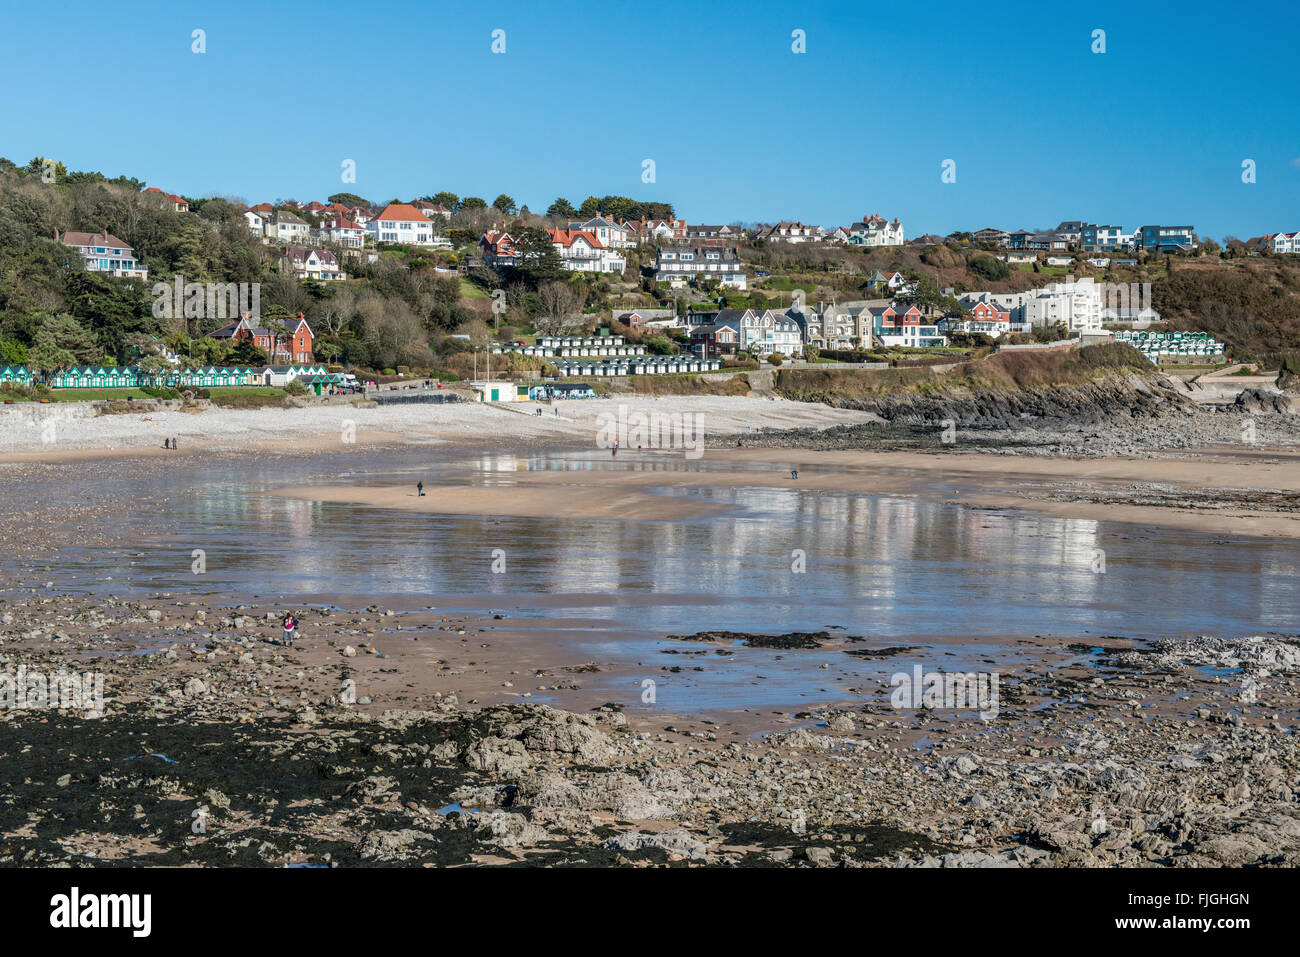 Langland Bay on the AONB Gower peninsula, south Wales - Stock Image